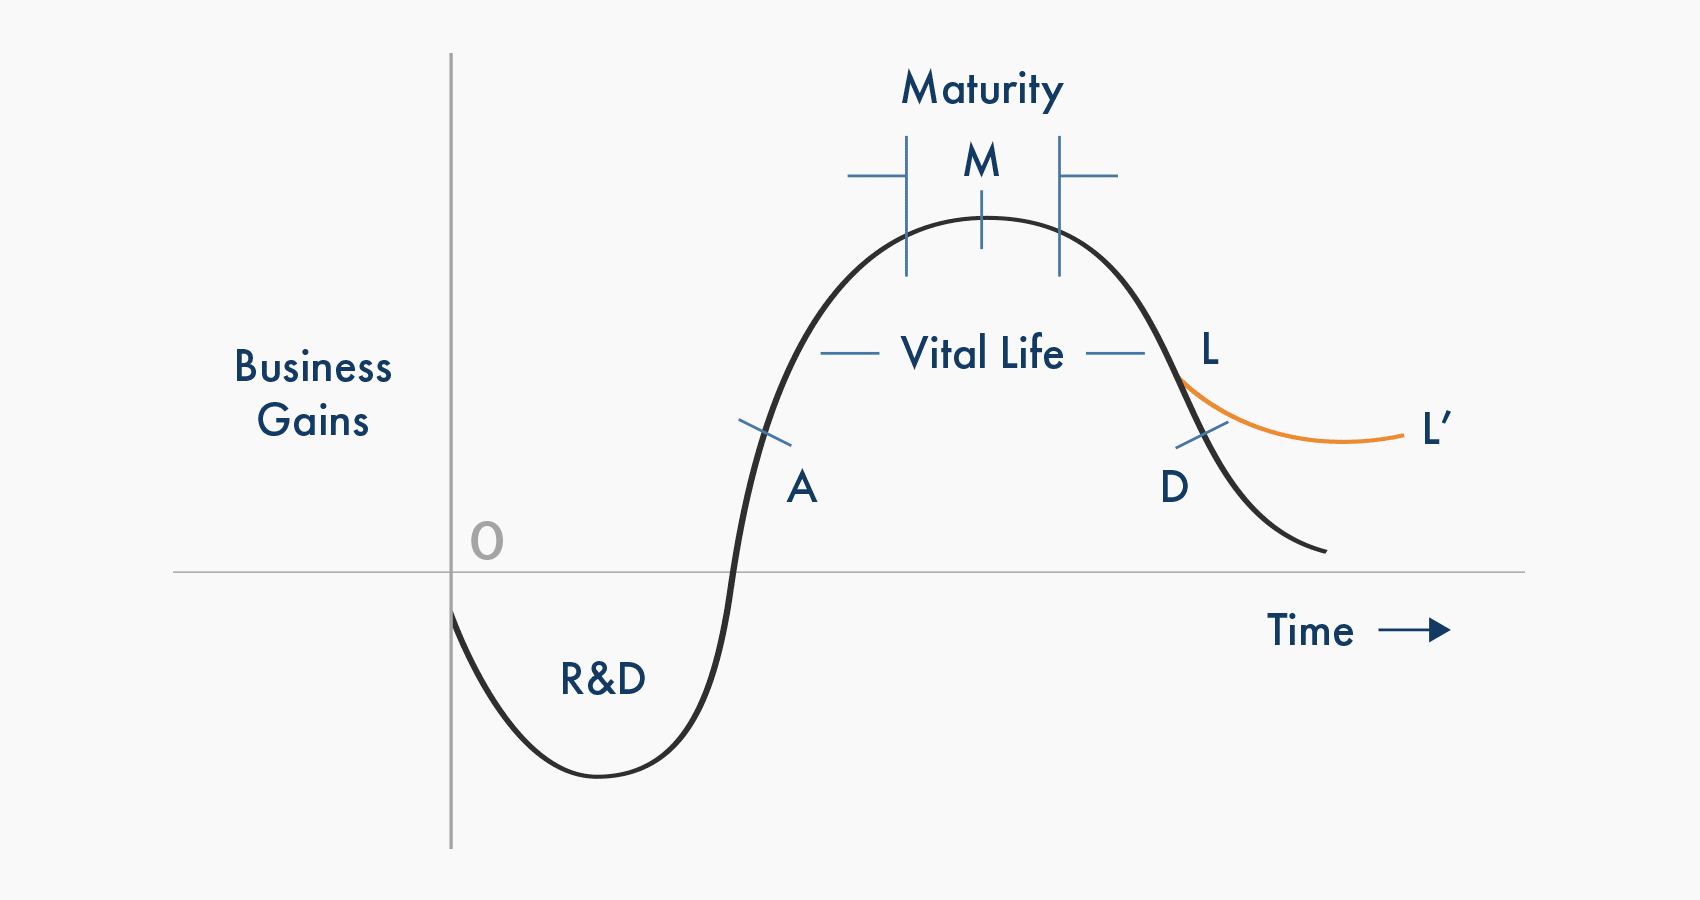 Technology Lifecycle Diagram